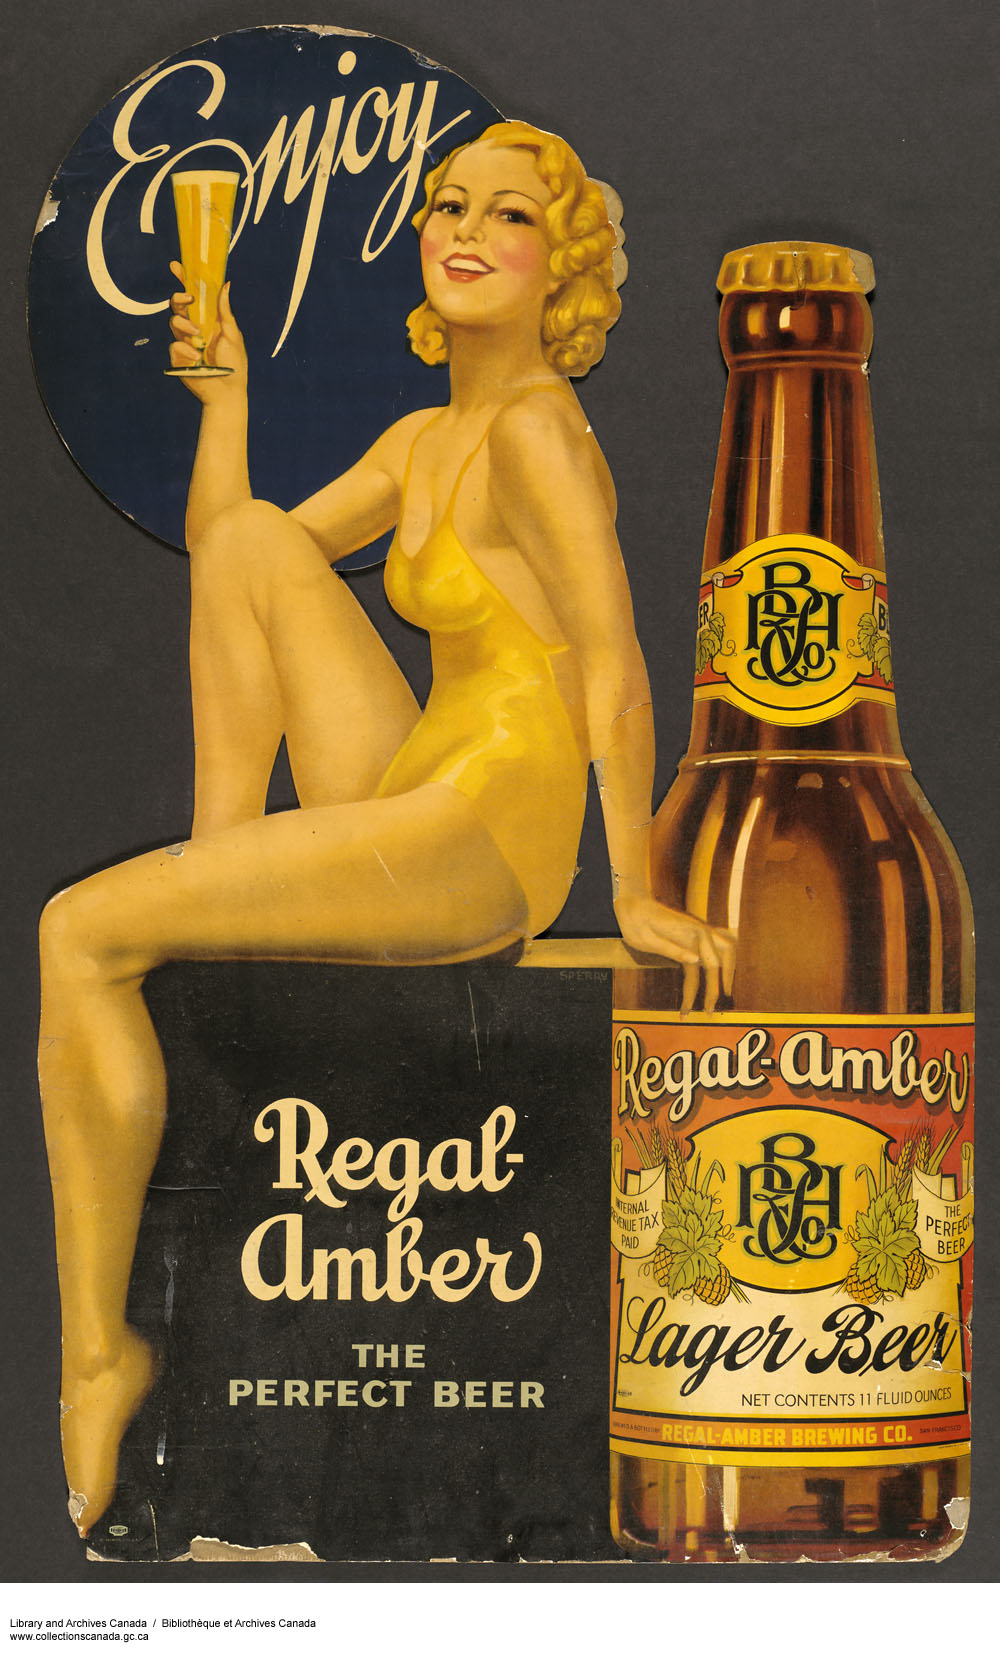 Colour Advertisement With Illustration Of A Woman Wearing Gold Coloured Bathing Suit Holding